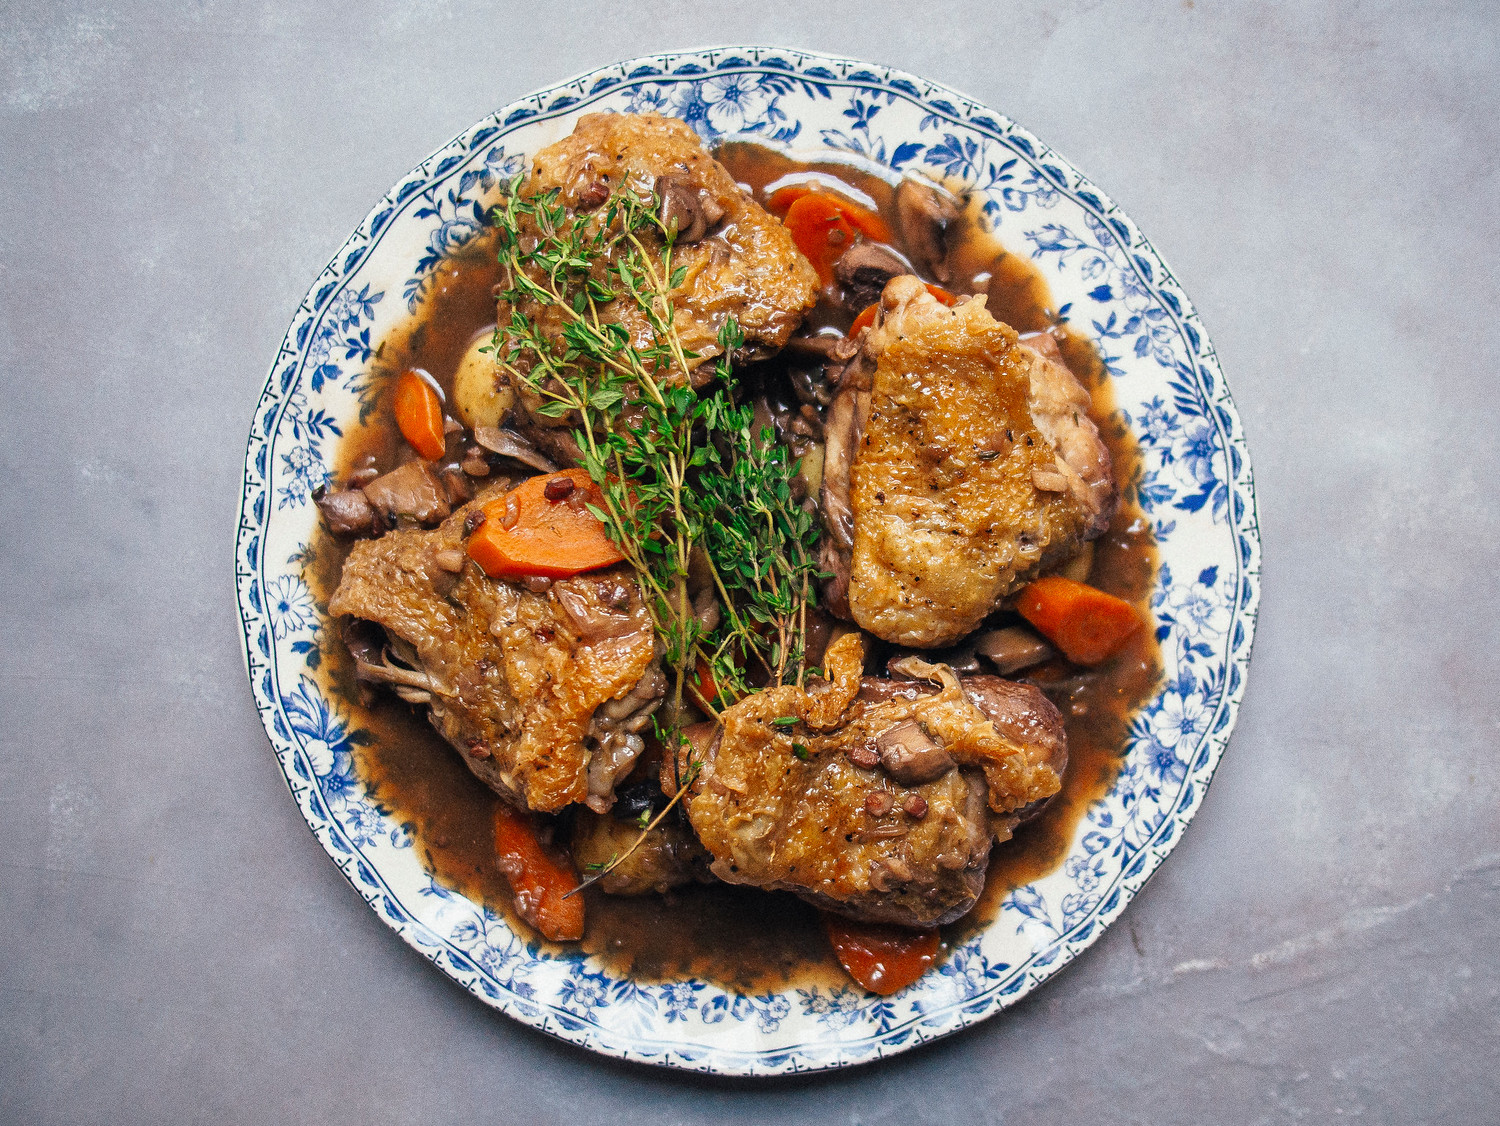 Instant pot coq au vin on a decorative blue plate on a grey background.